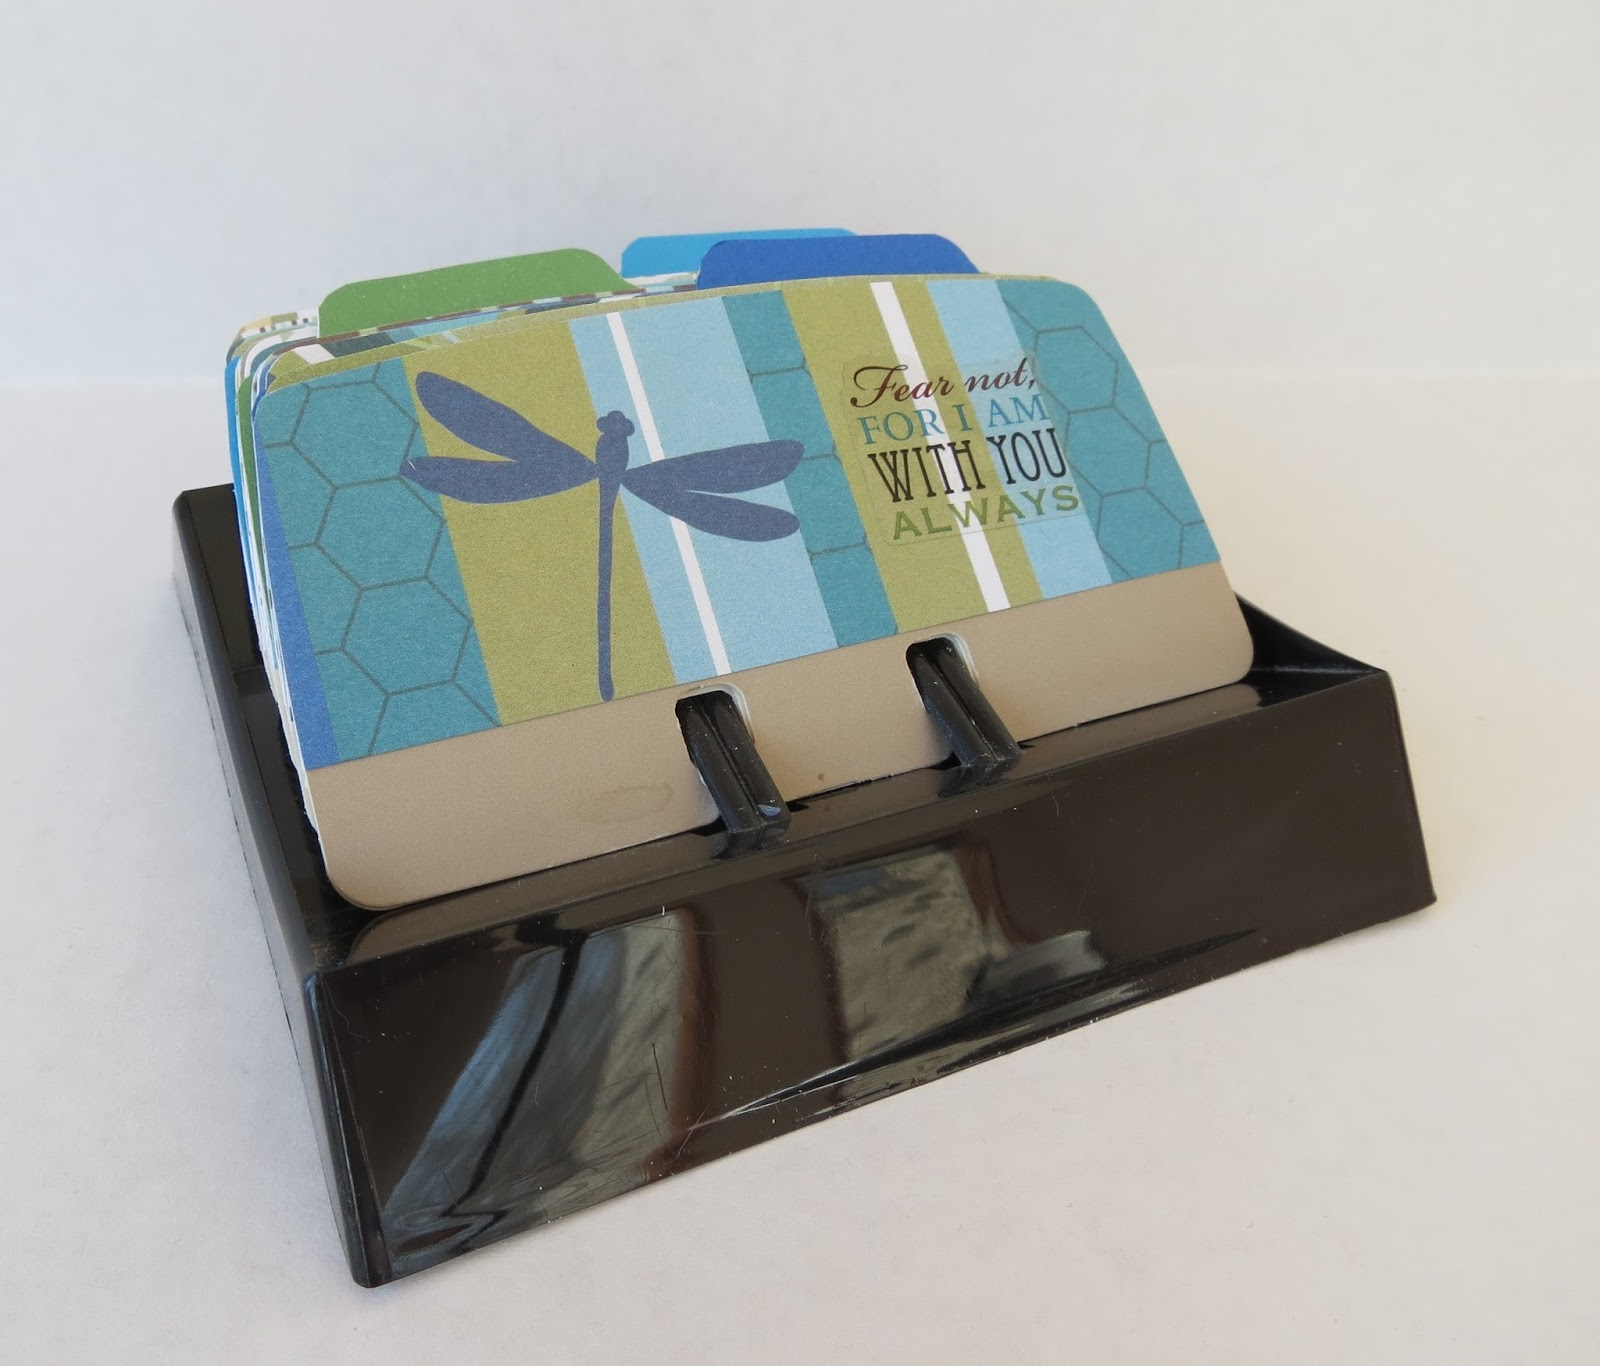 an upcycled rolodex into a scripture inspiration album